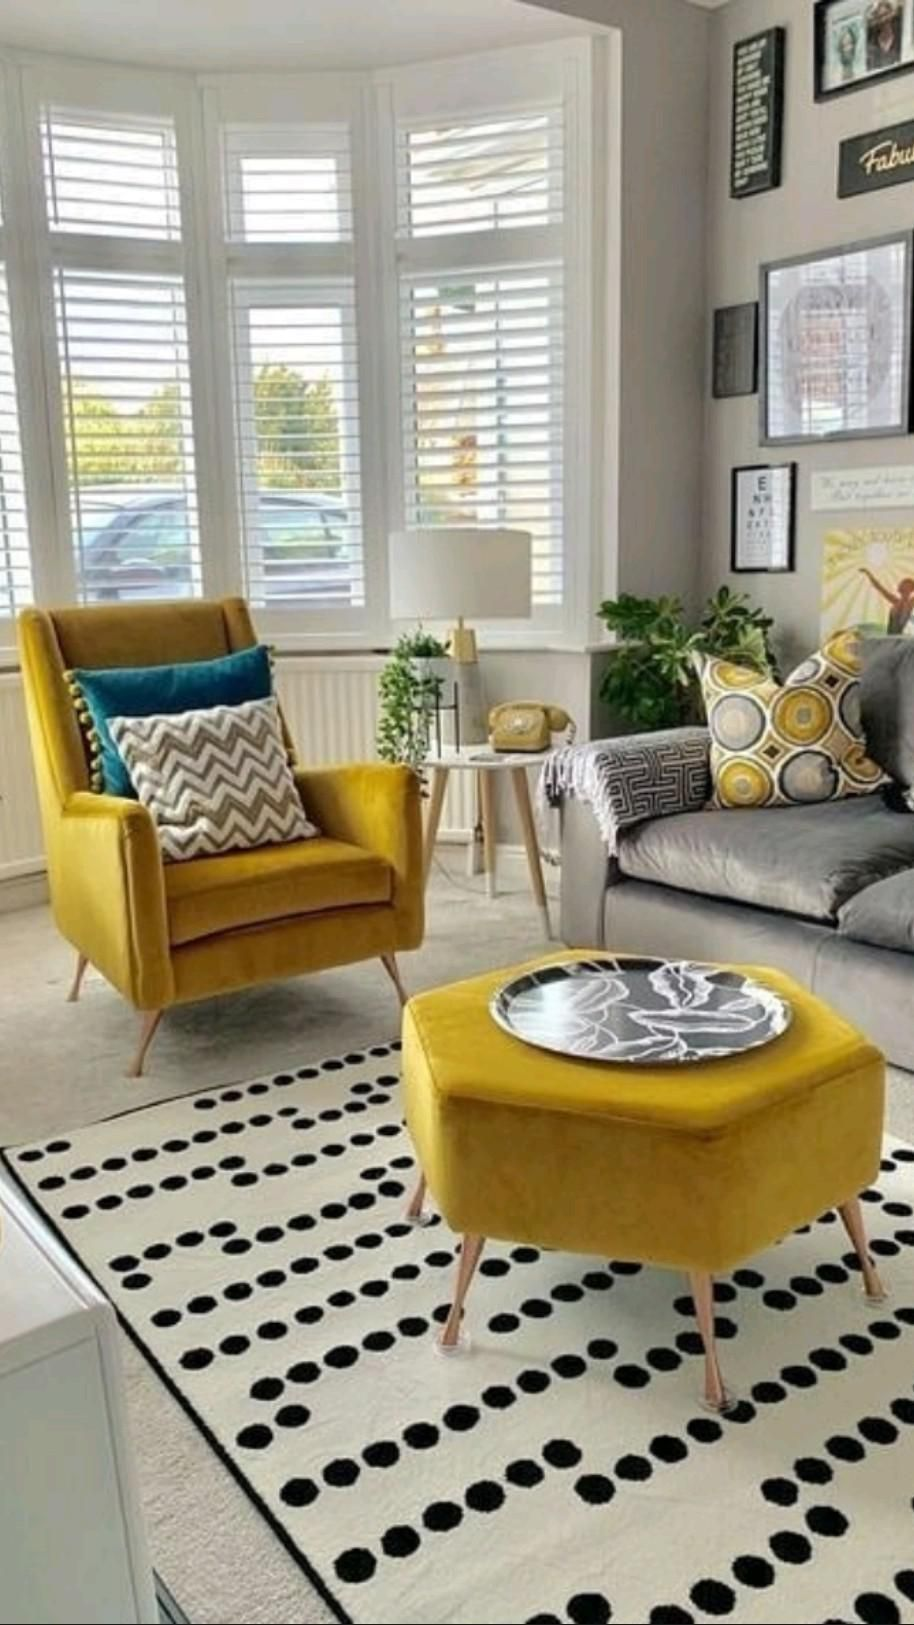 Colourful living room ideas - 20 of the best